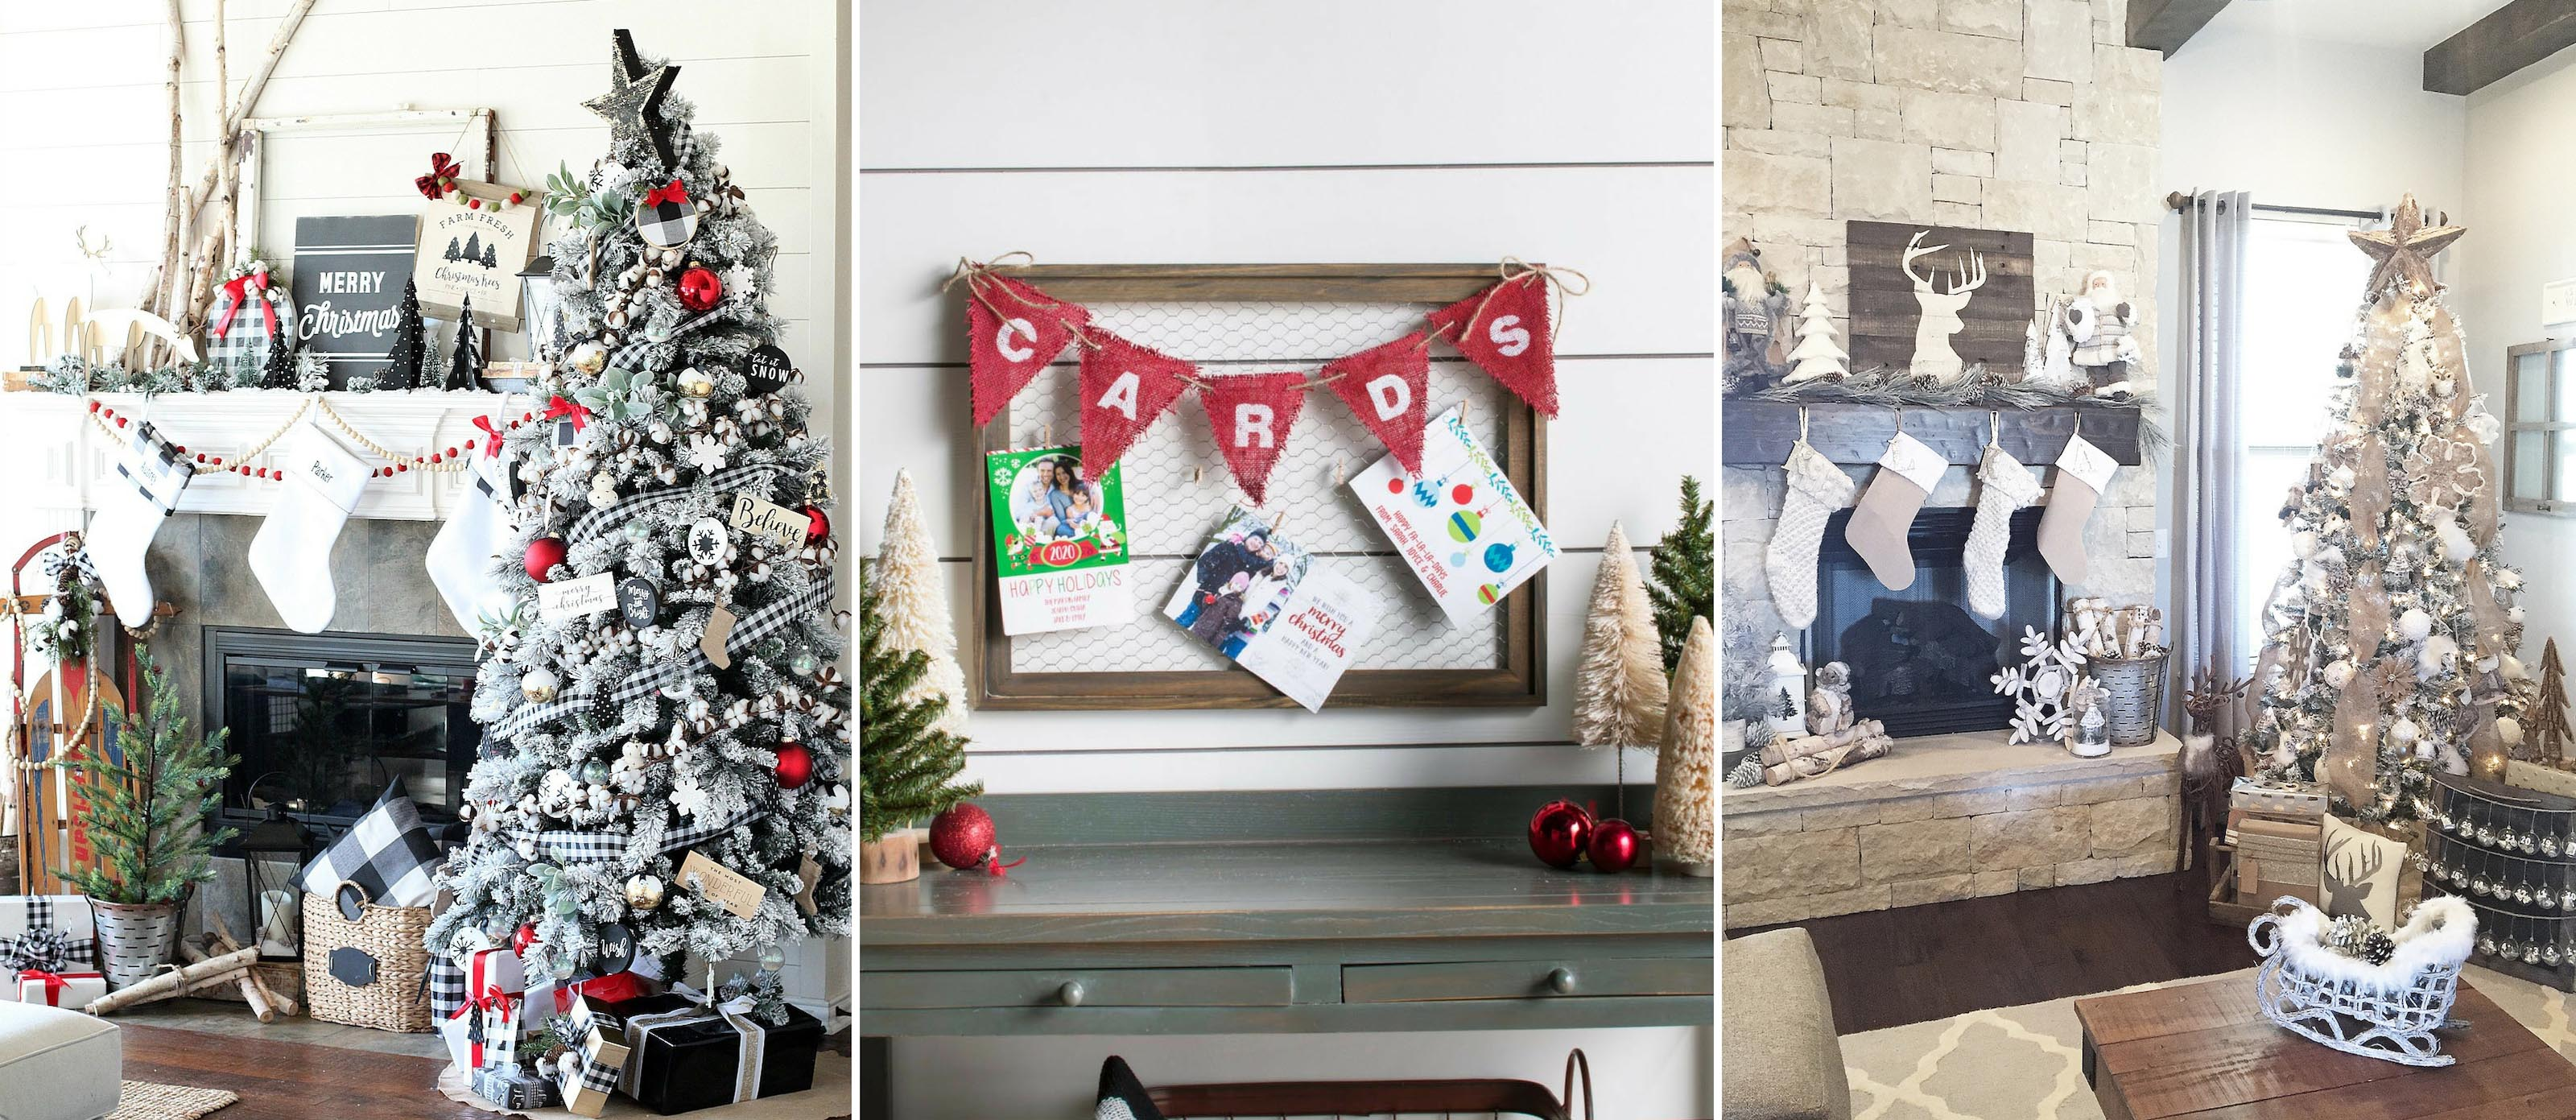 Christmas Farmhouse Decorating Ideas Joanna Gaines Would Approve Fun365